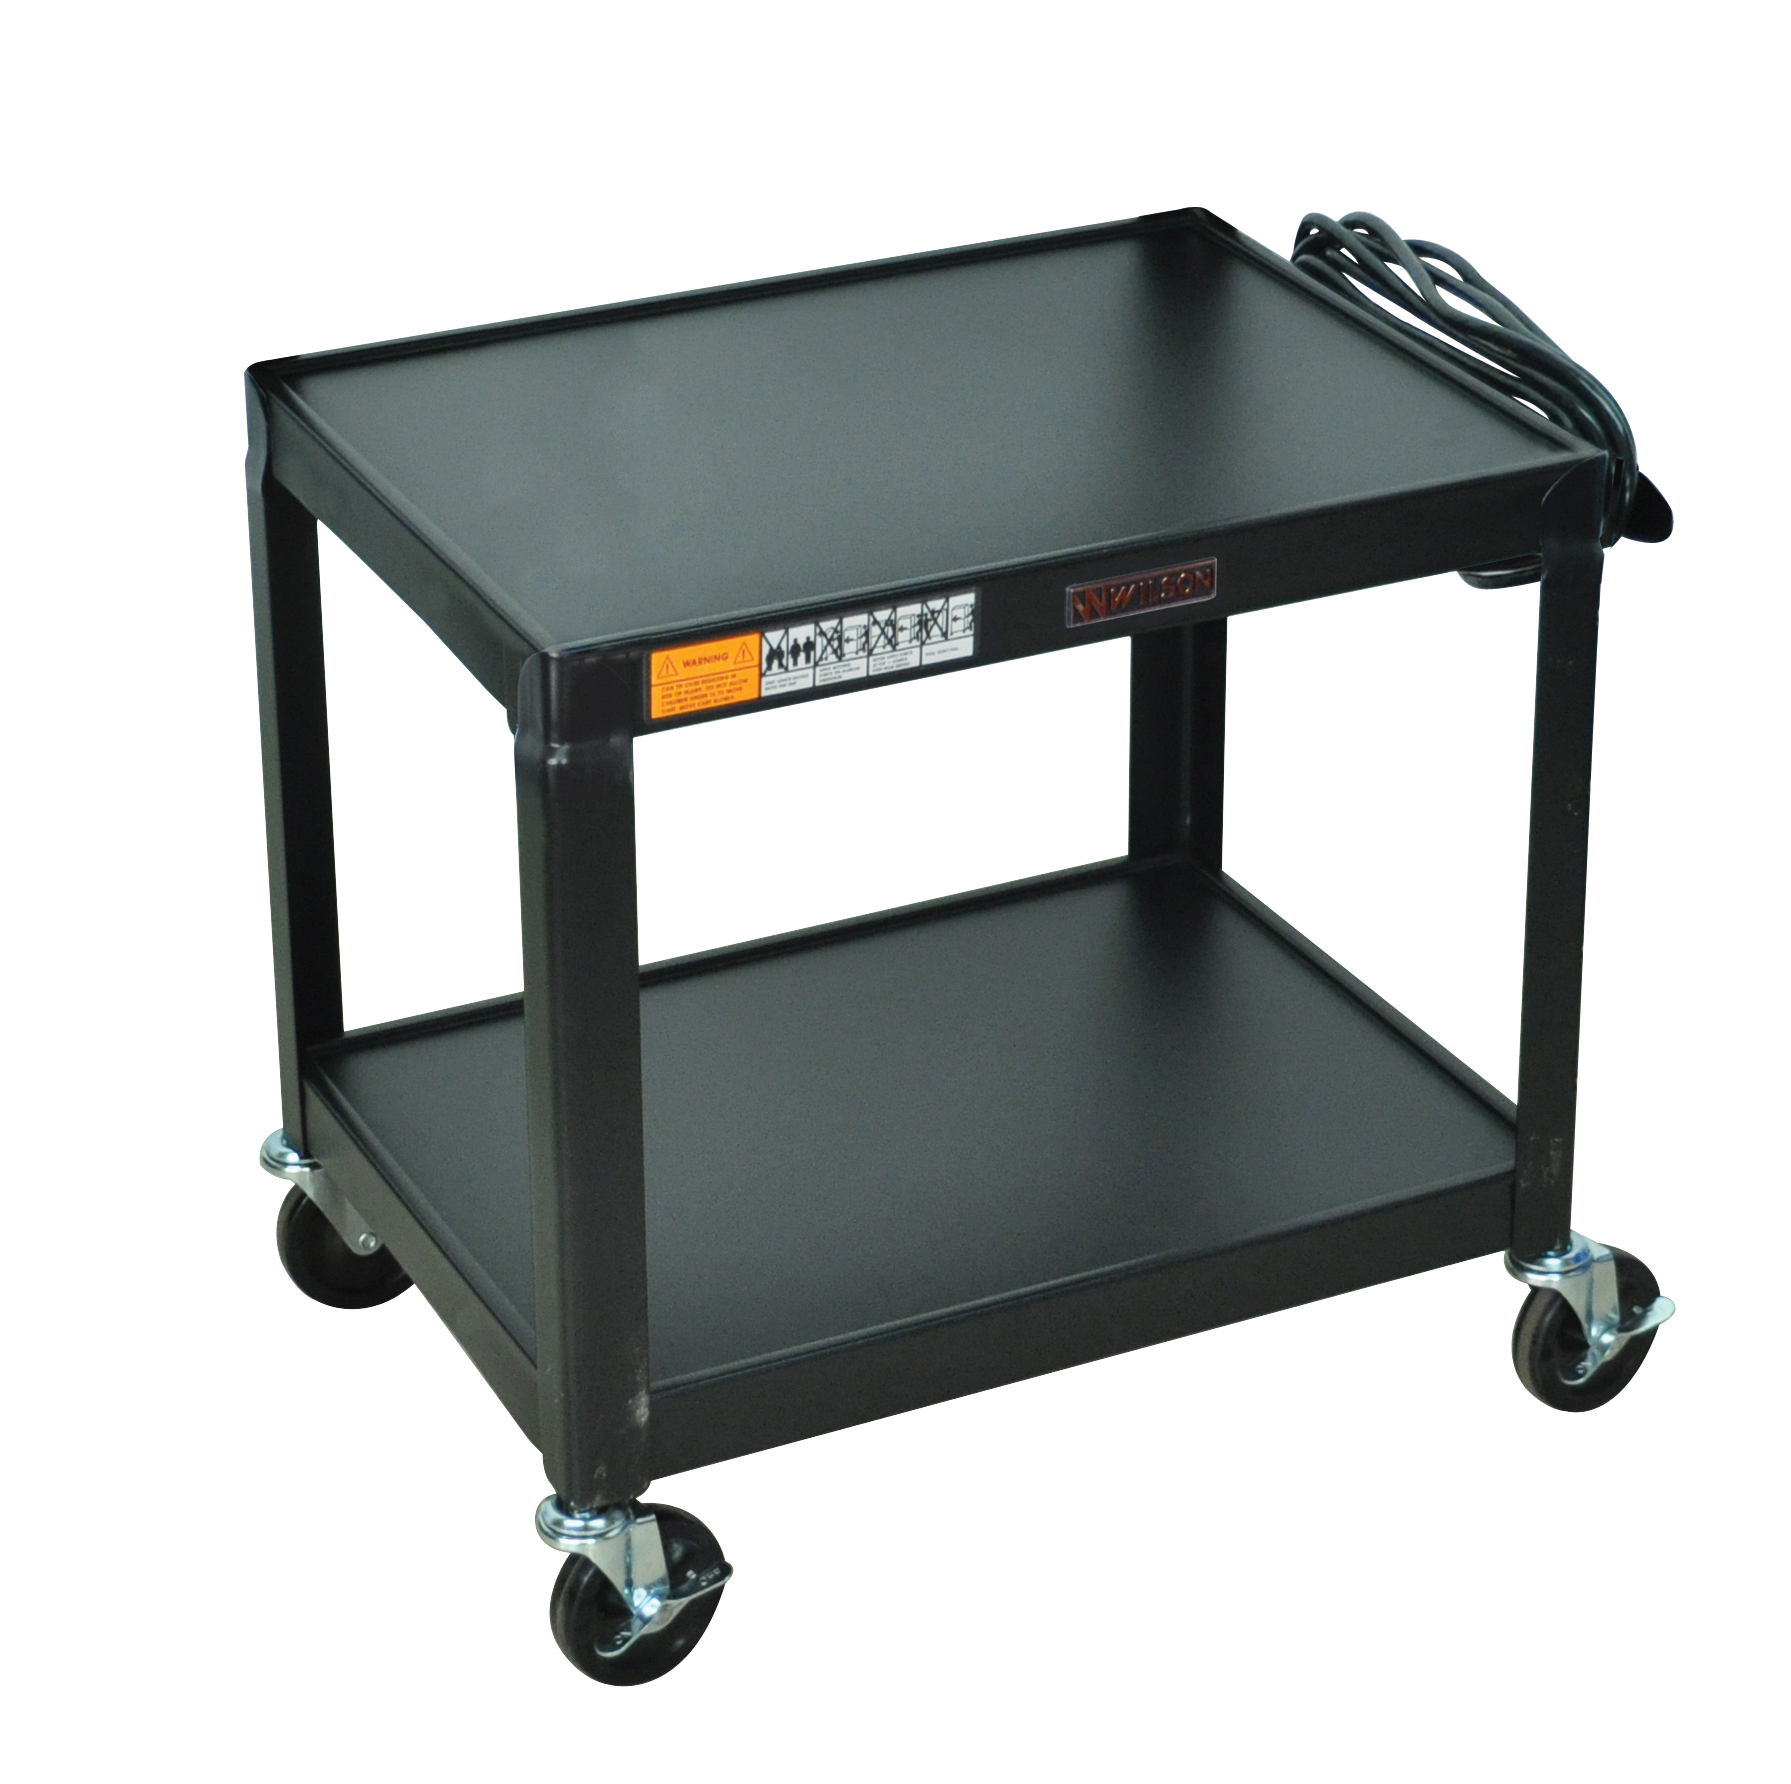 "Luxor Multipurpose W26E 2 Shelves Fixed Height Steel A/V Cart - 26"" H, Black"